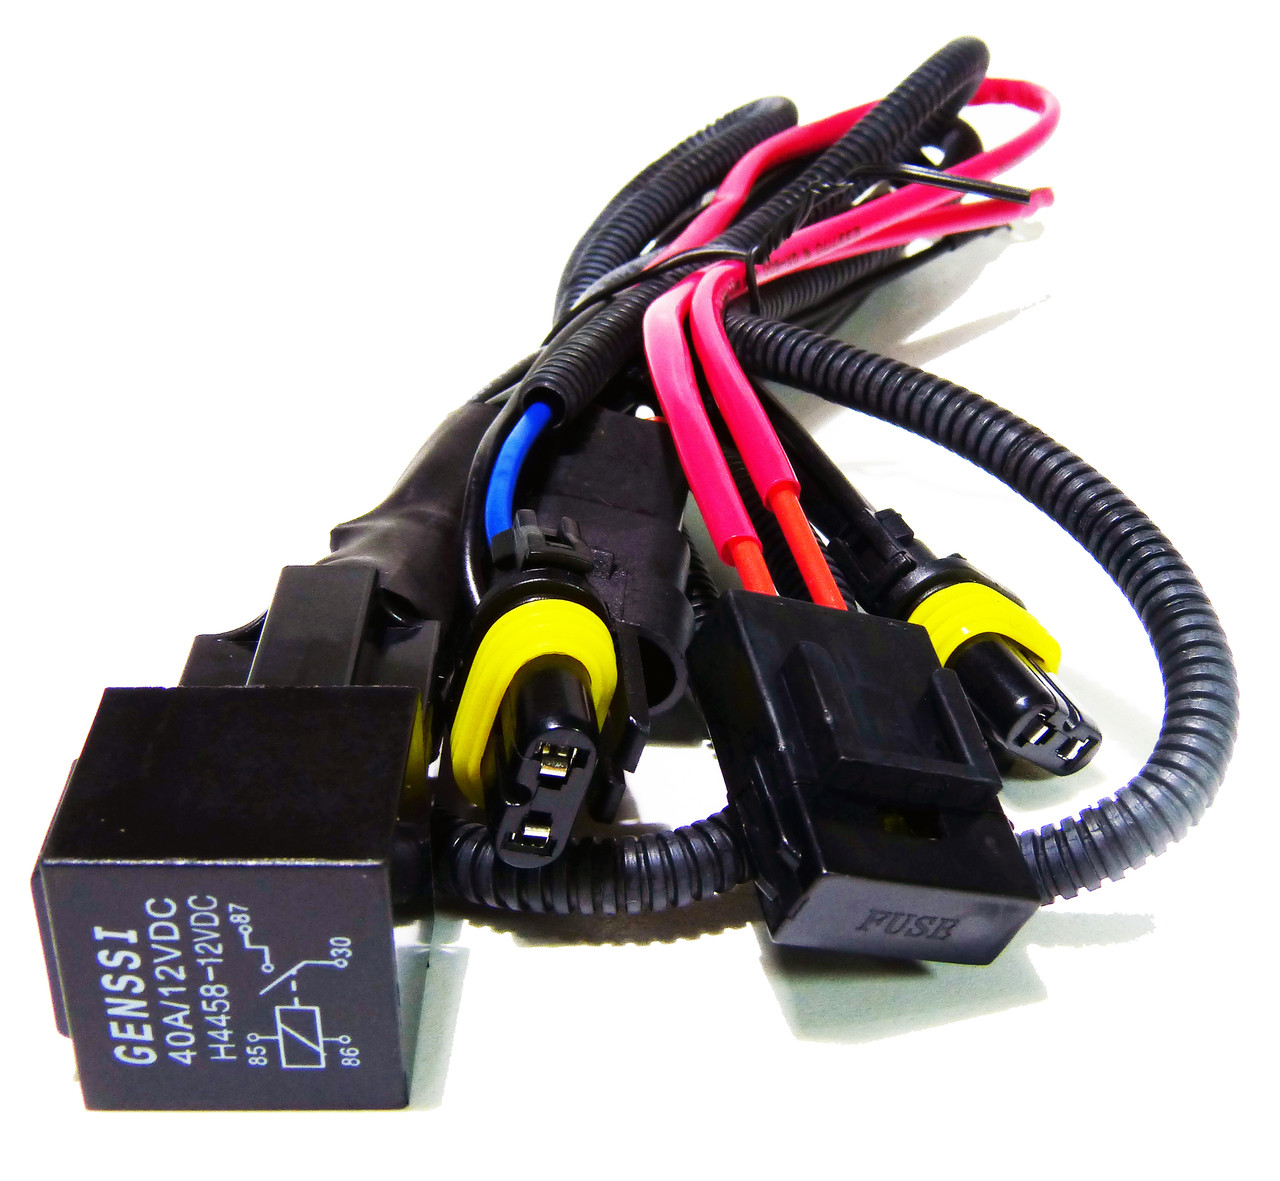 hid xenon wire relay harness 9006 9005 h10 9145 9055 9012 [ 1280 x 1181 Pixel ]